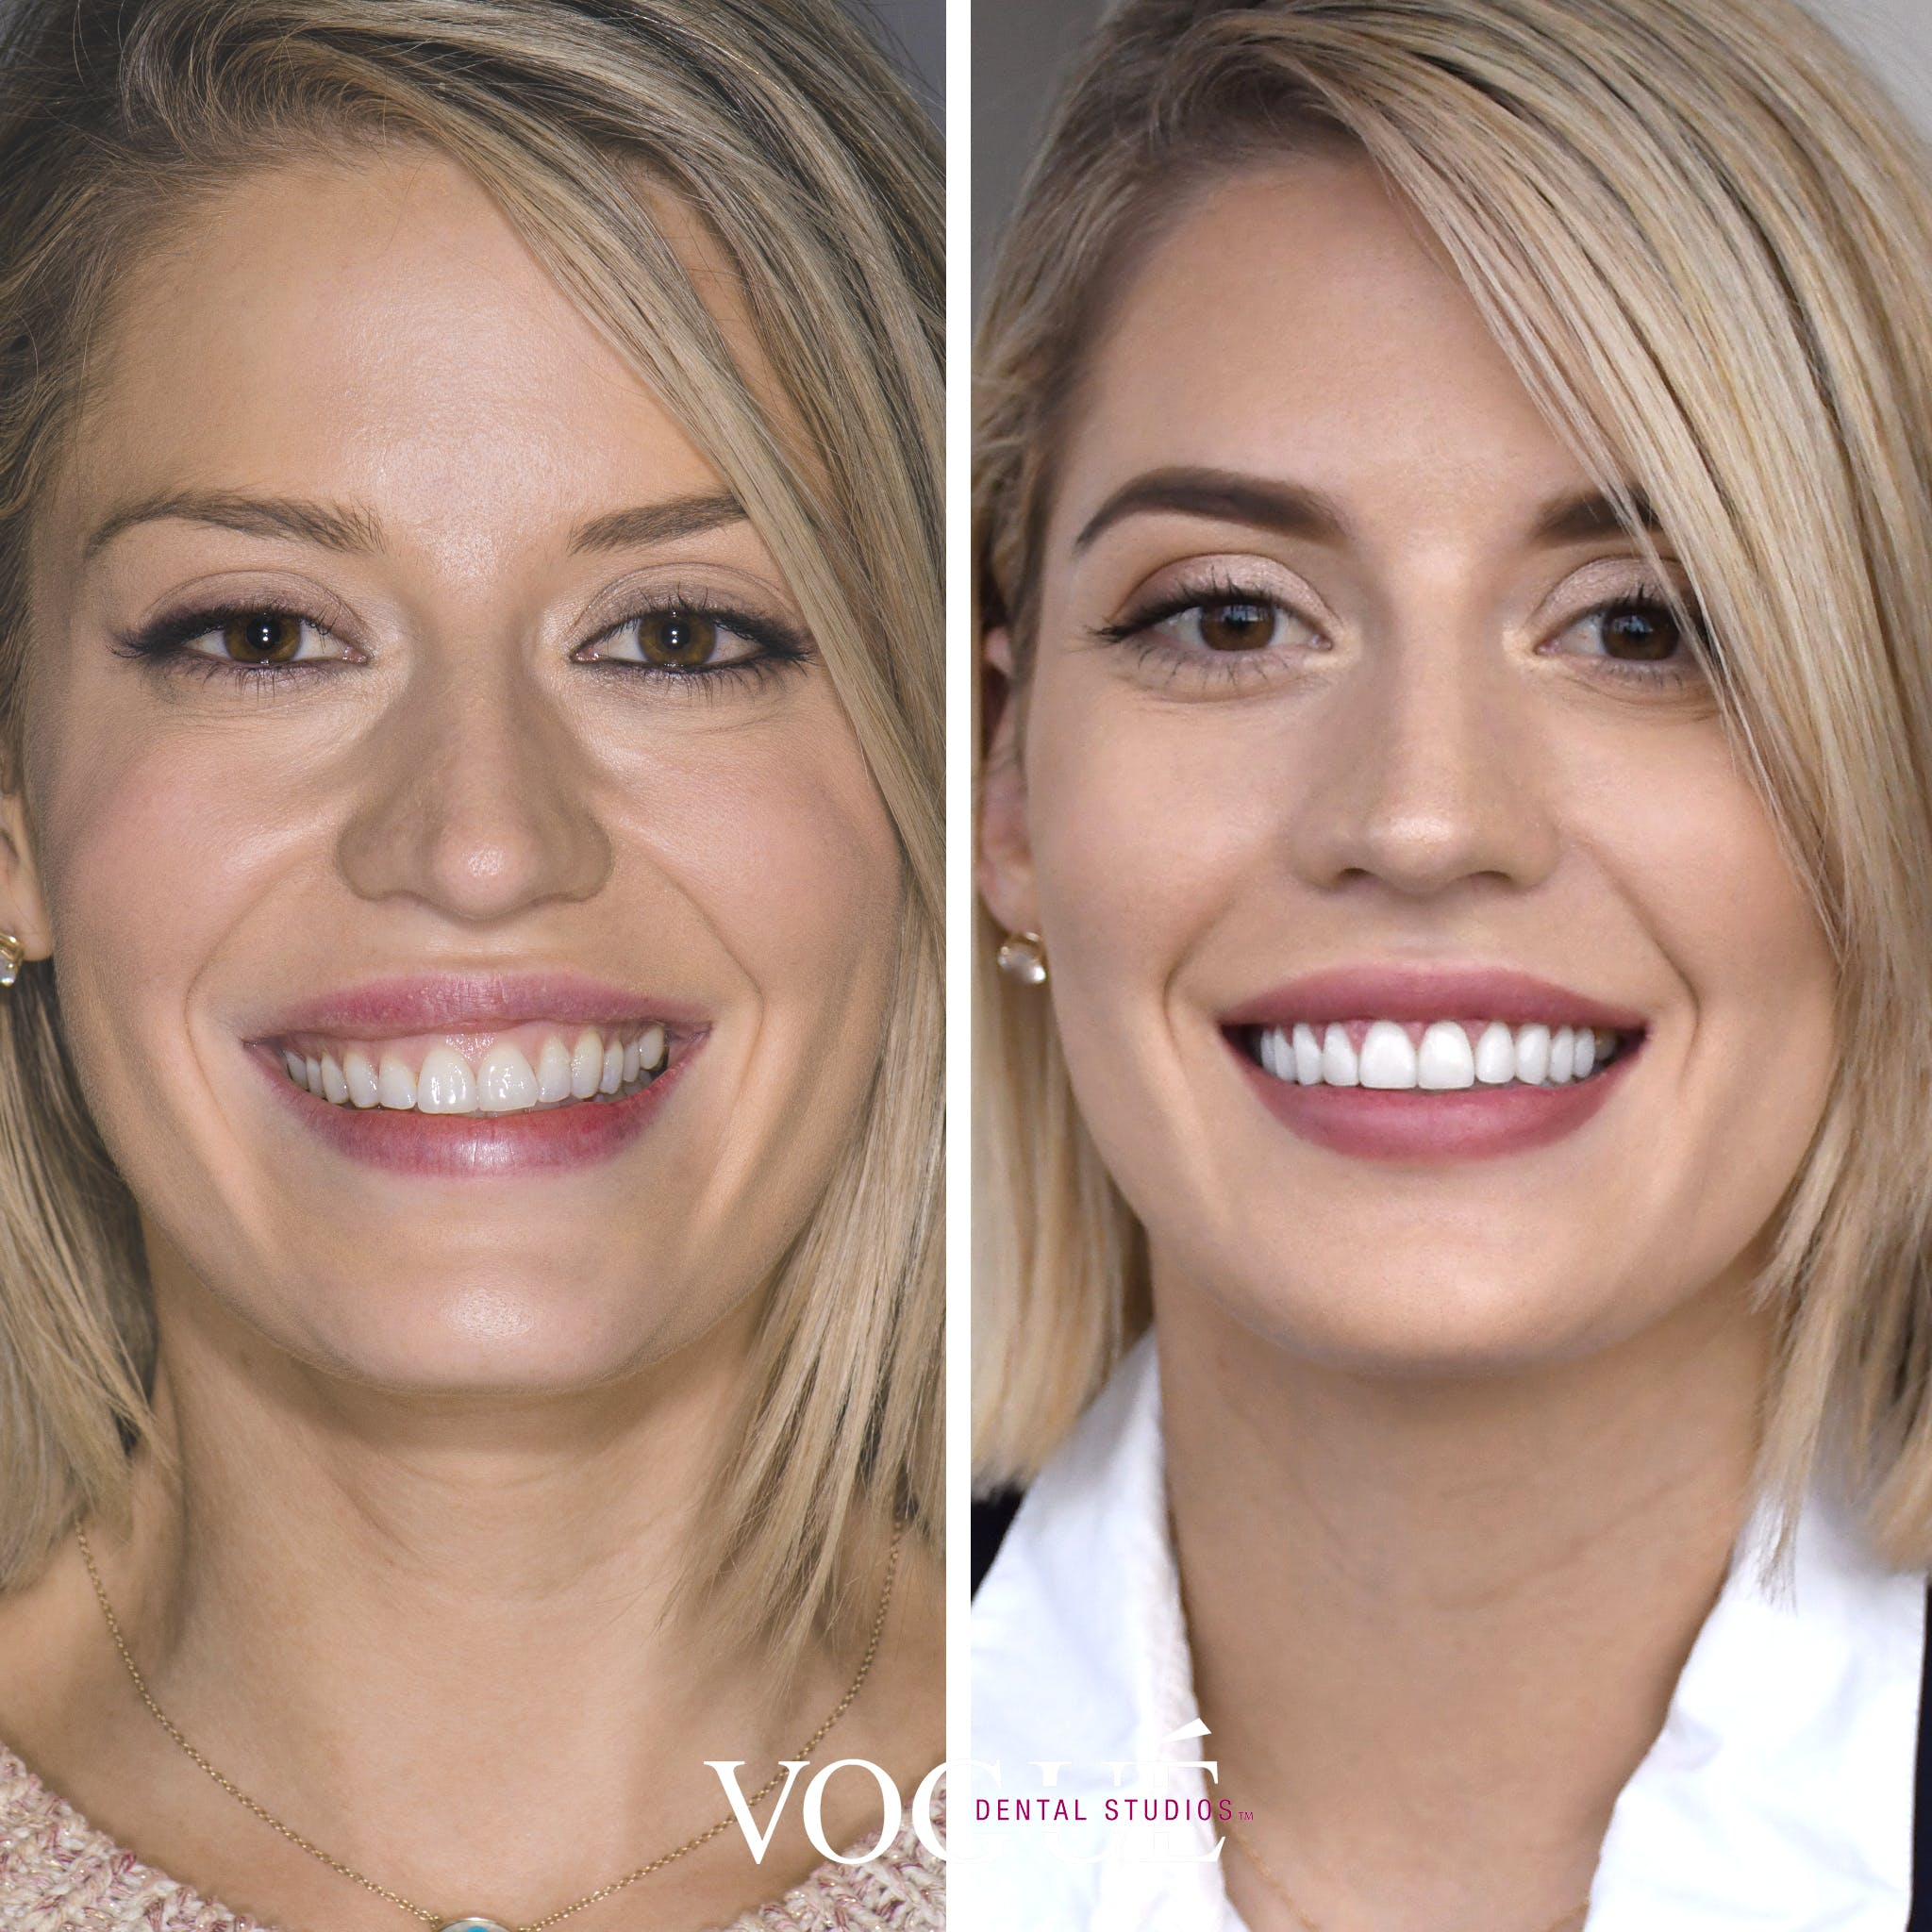 Before and after a canted smile or skewed smile treated with porcelain veneers and gum laser surgery.